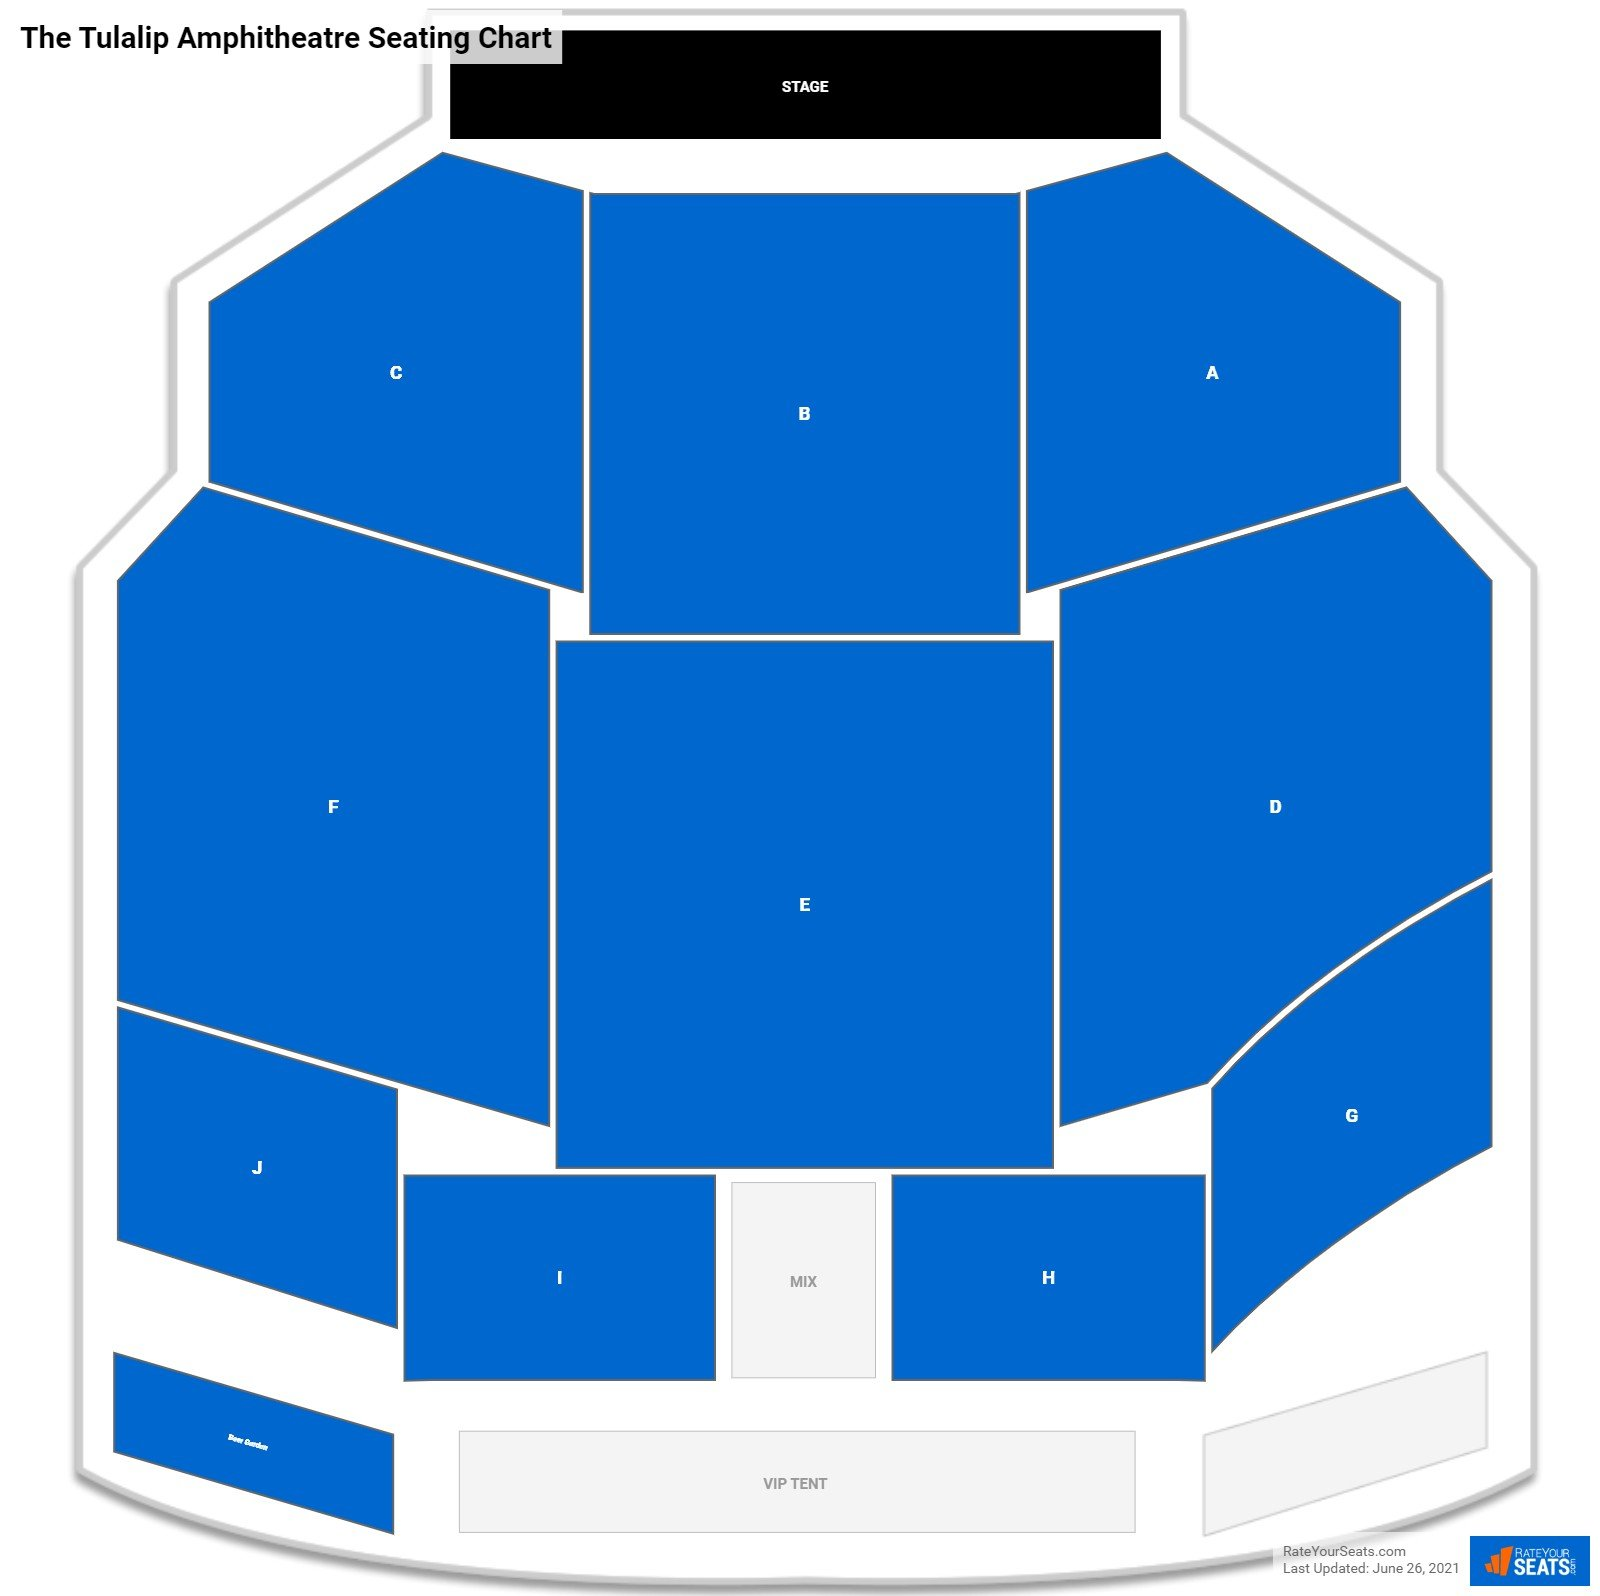 The Tulalip Amphitheatre Seating Chart